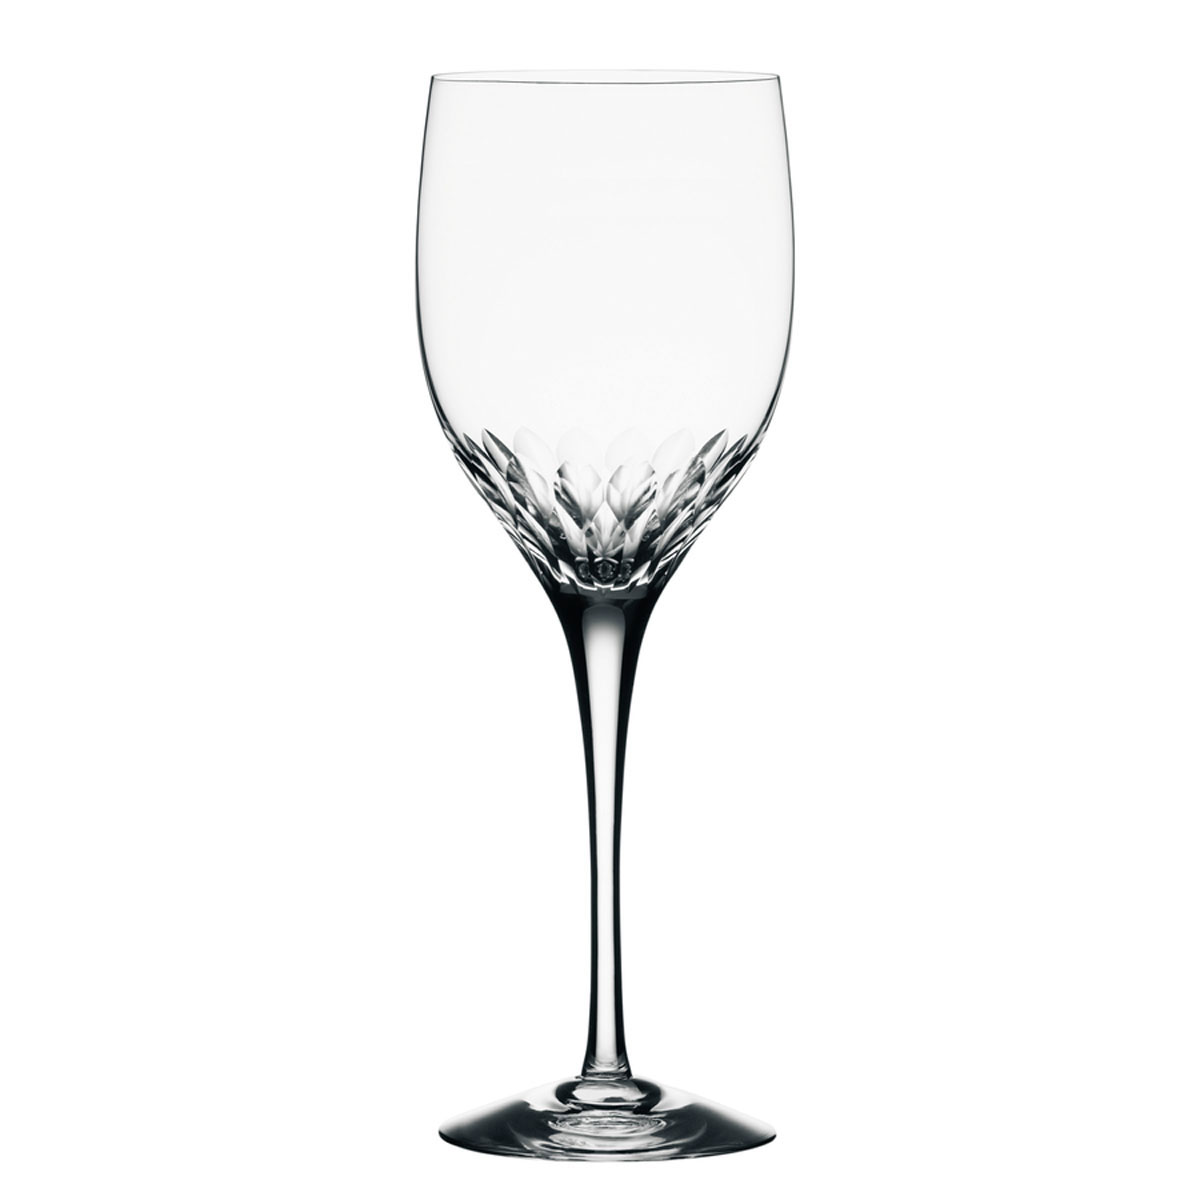 Orrefors Crystal, Prelude Crystal Iced Beverage, Single